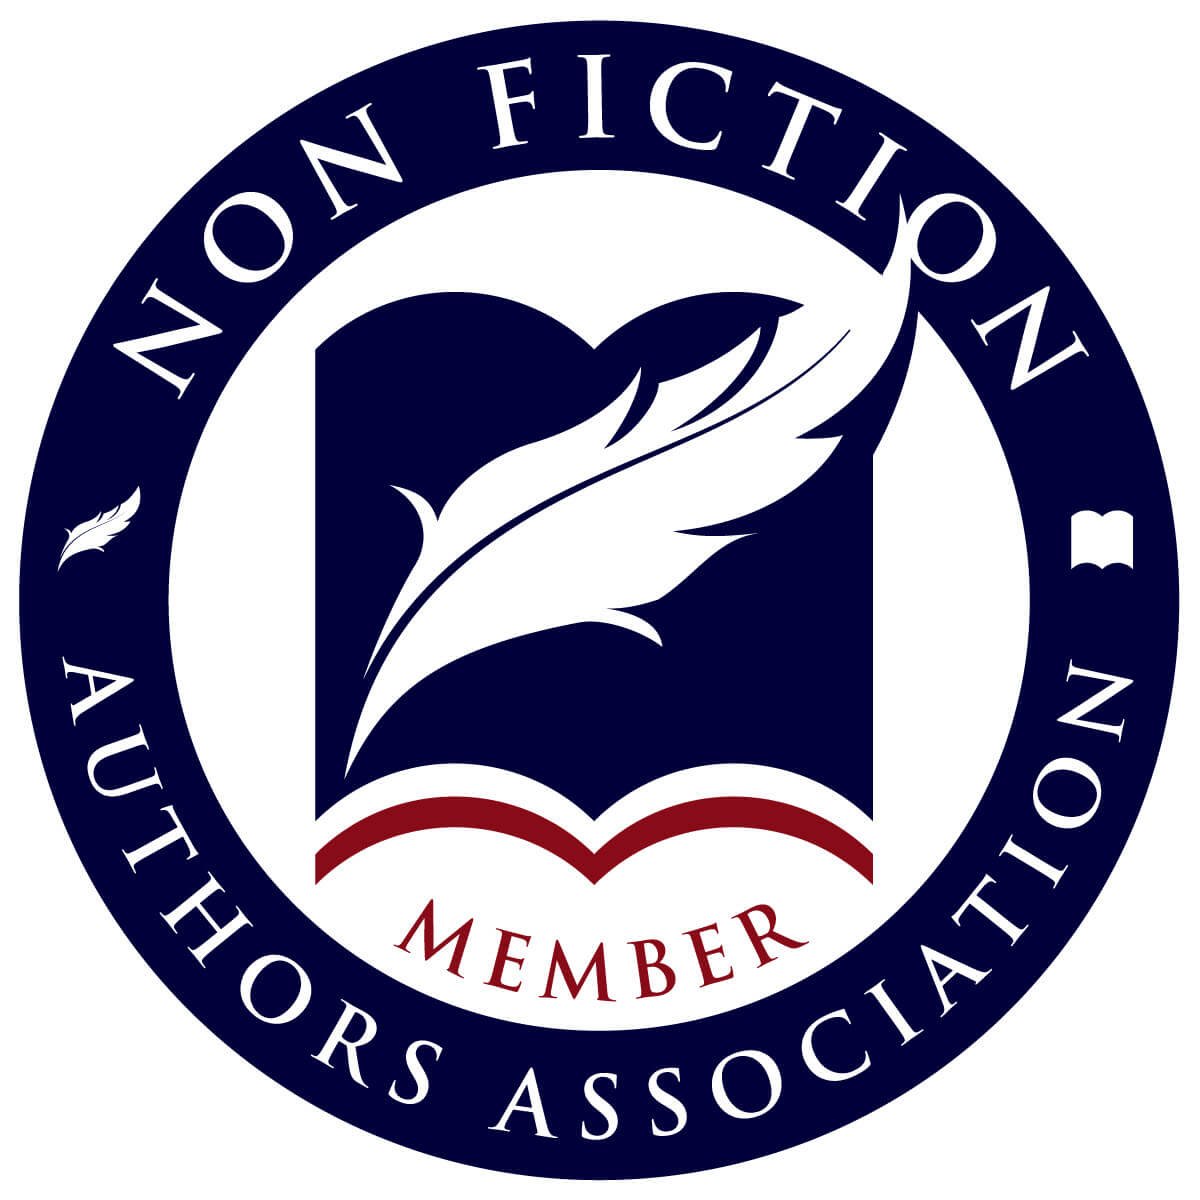 Carlos Djomo, Non Fiction Authors Association (NFAA) member Association